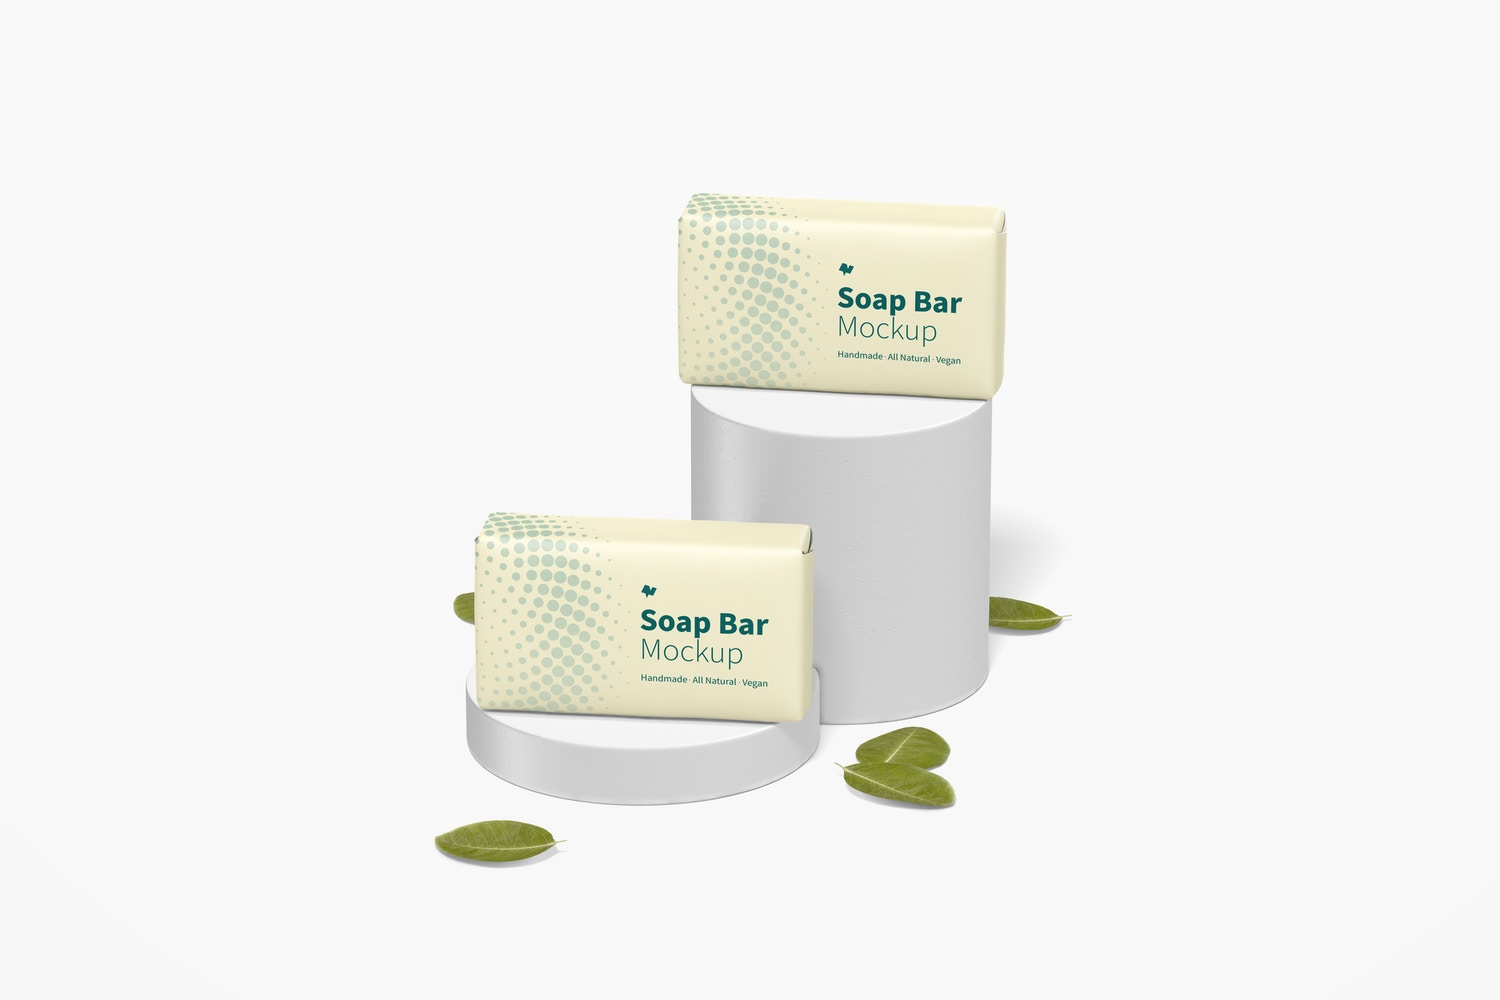 Soap Bars with Paper Package Mockup, Front View